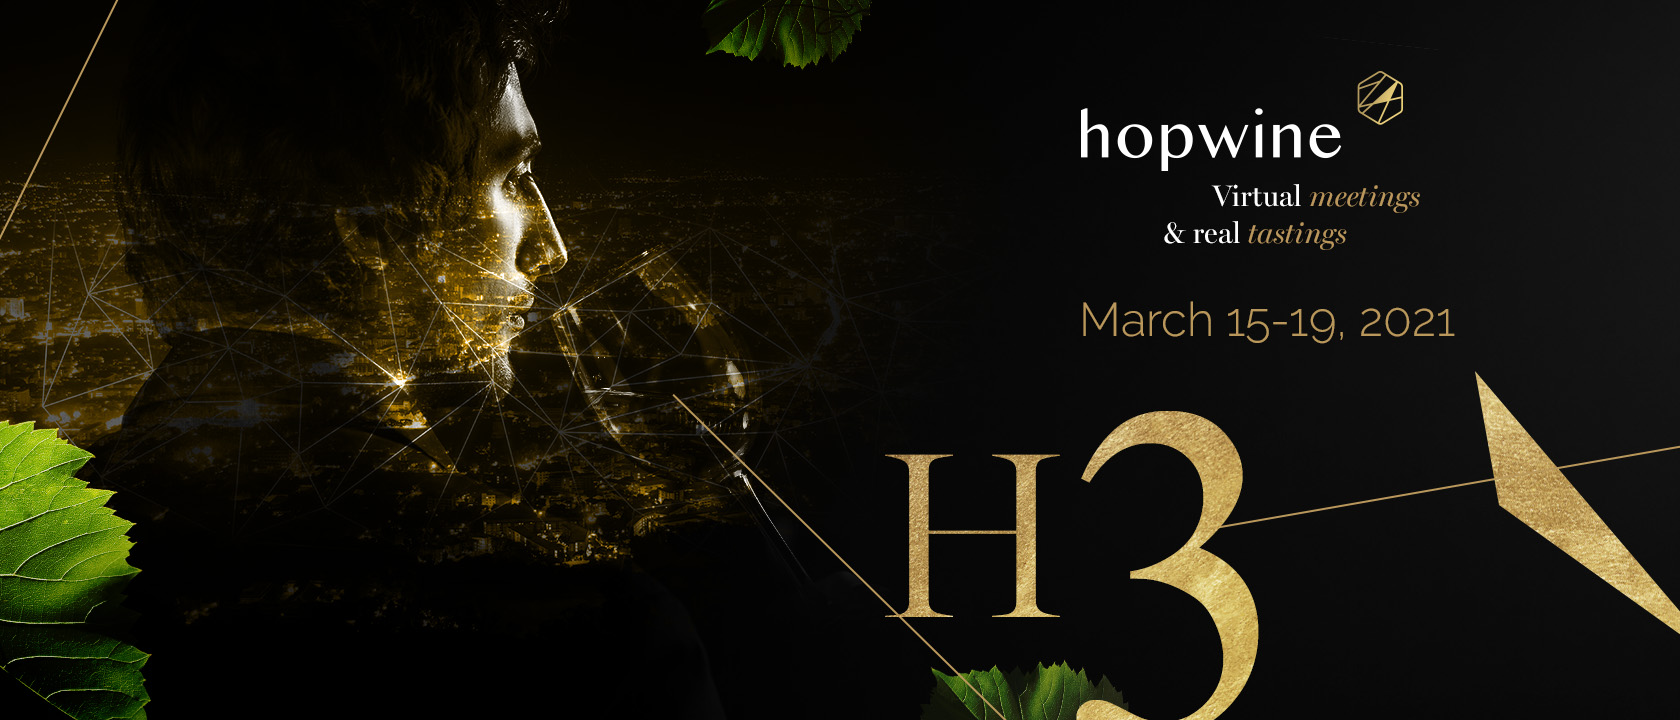 Hopwine H3 - Open to all wine and spirits